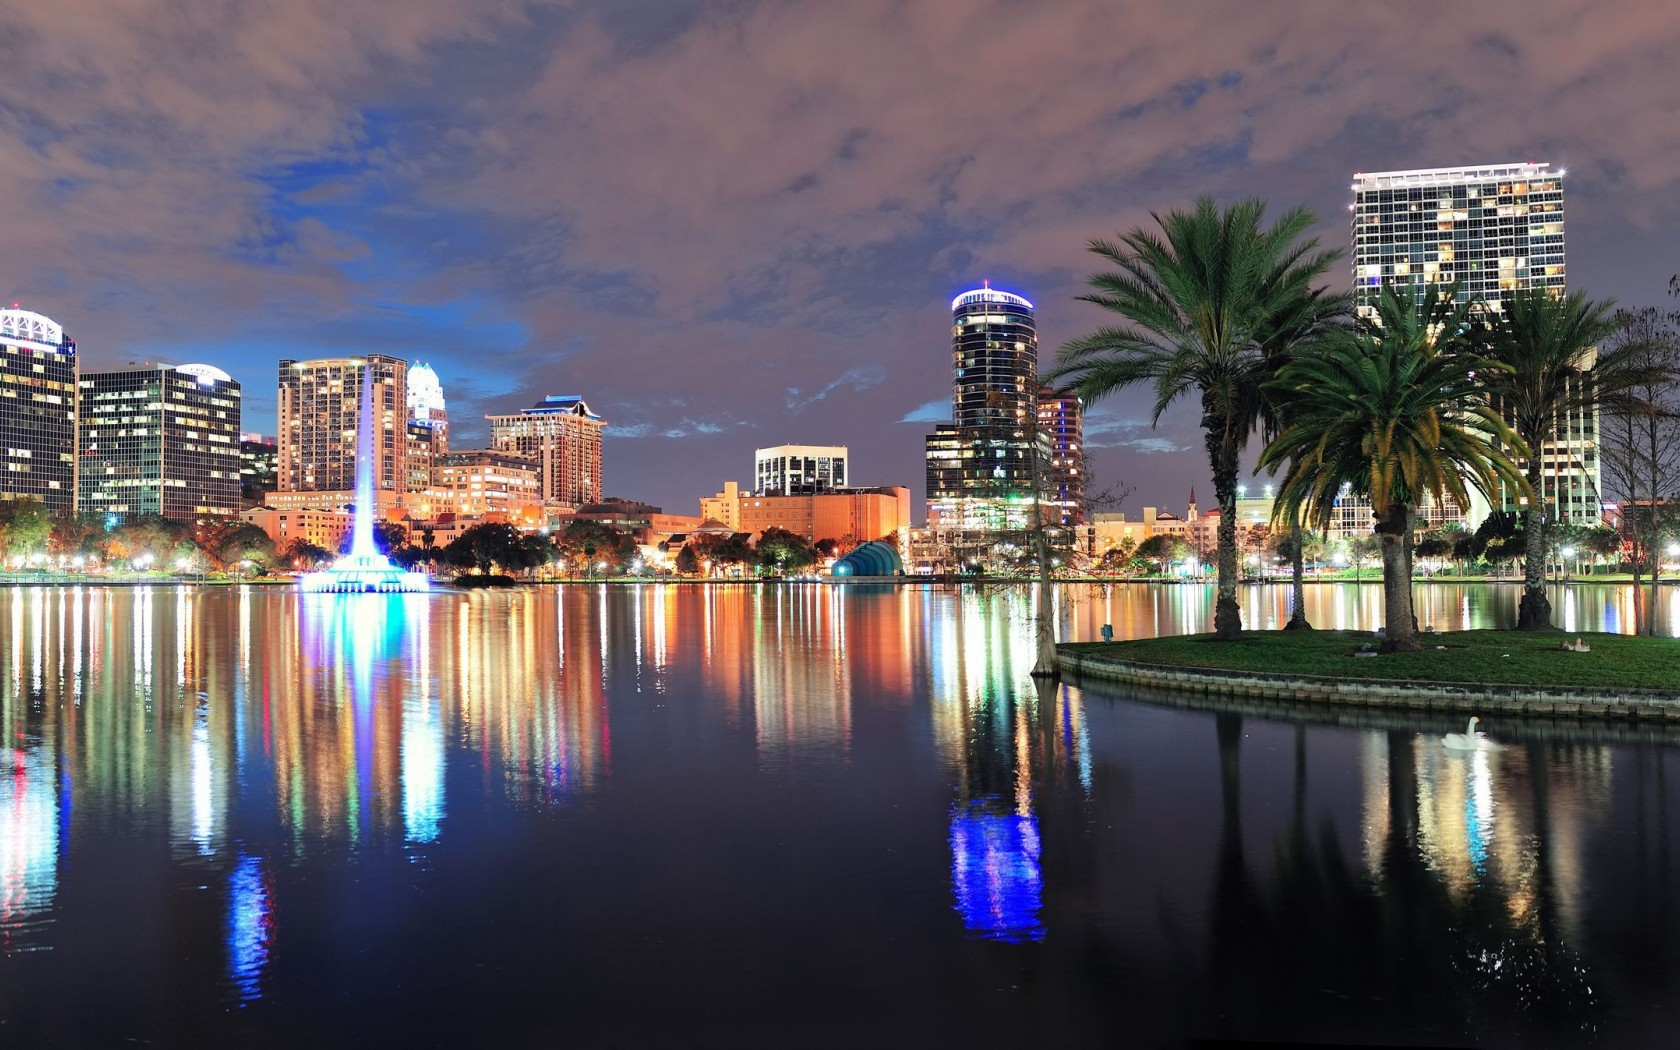 2 Orlando Hd Wallpapers Backgrounds Wallpaper Abyss